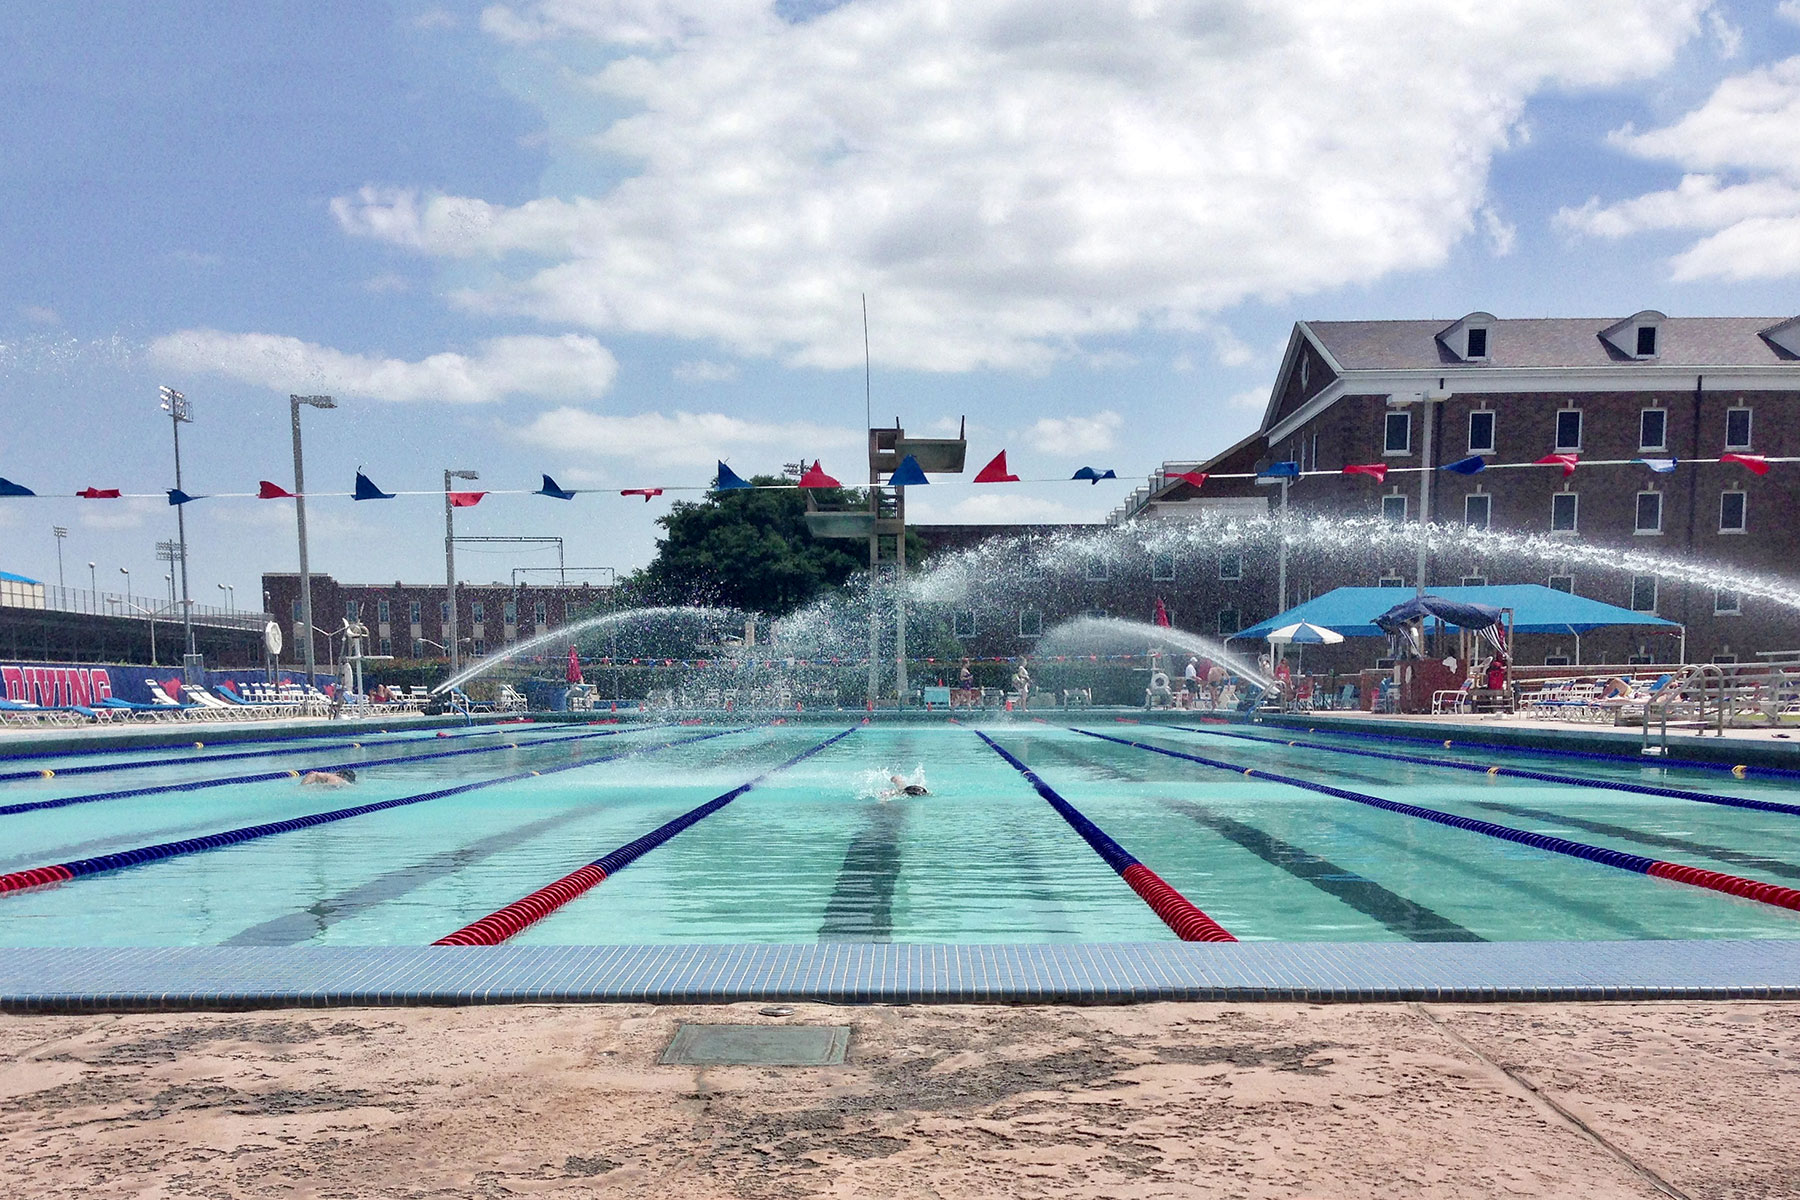 The Best Lap Swimming Pools in Dallas - D Magazine